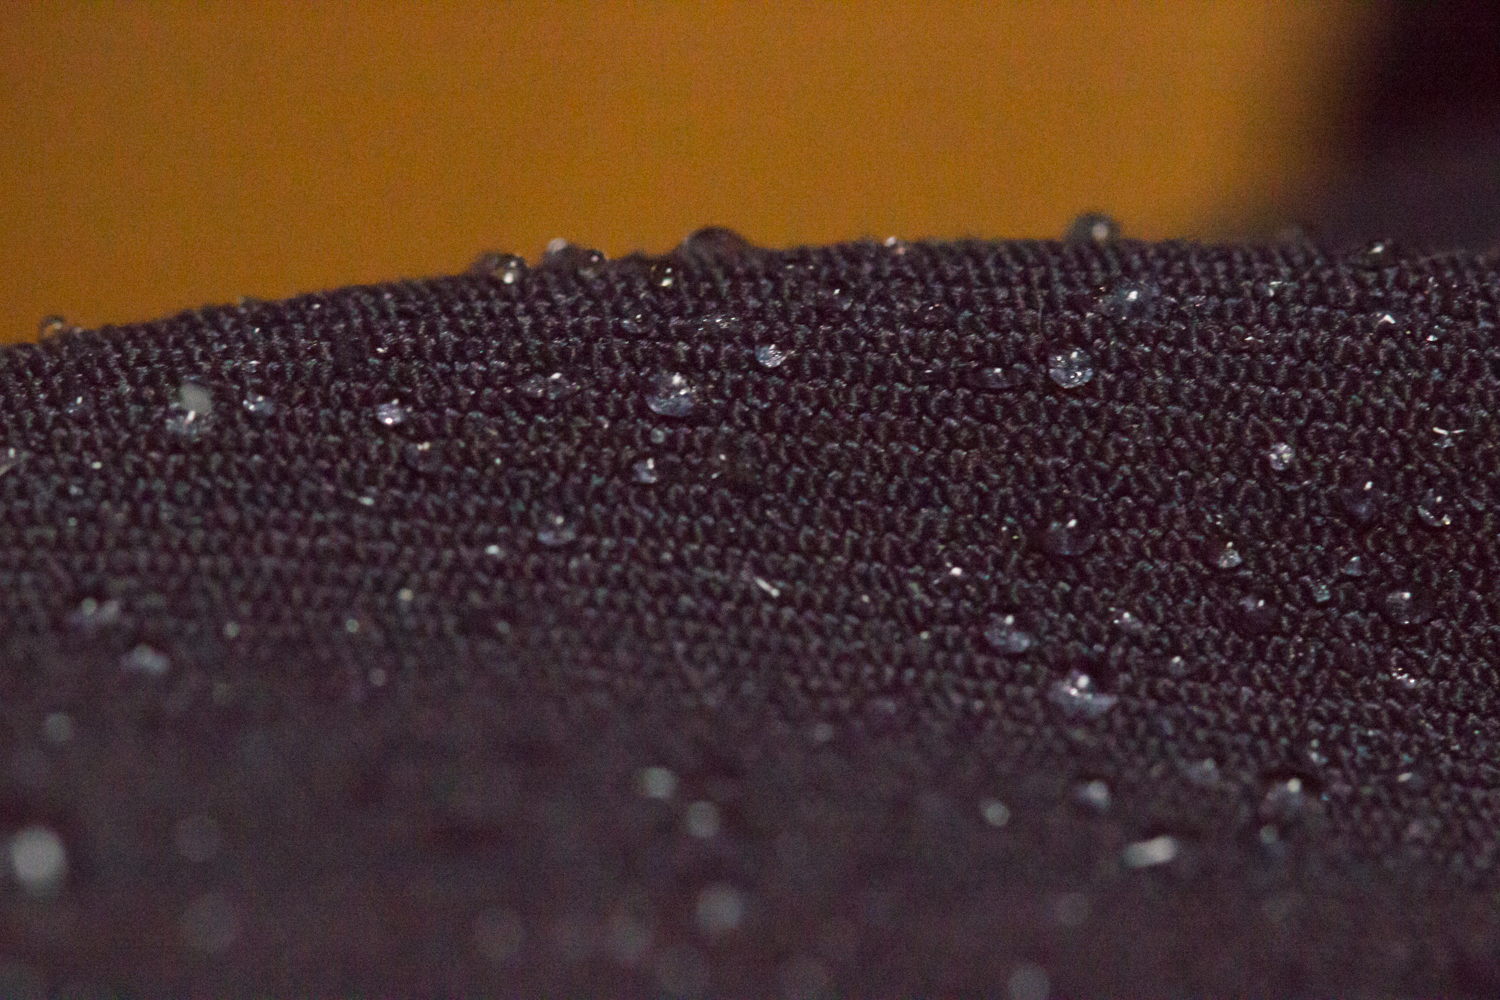 A close-up of the doubleweave twill used in the Ladies' daily riding pants. The Nano Sphere treatment helps keep water, coffee, ketchup, and their ilk from soaking in.